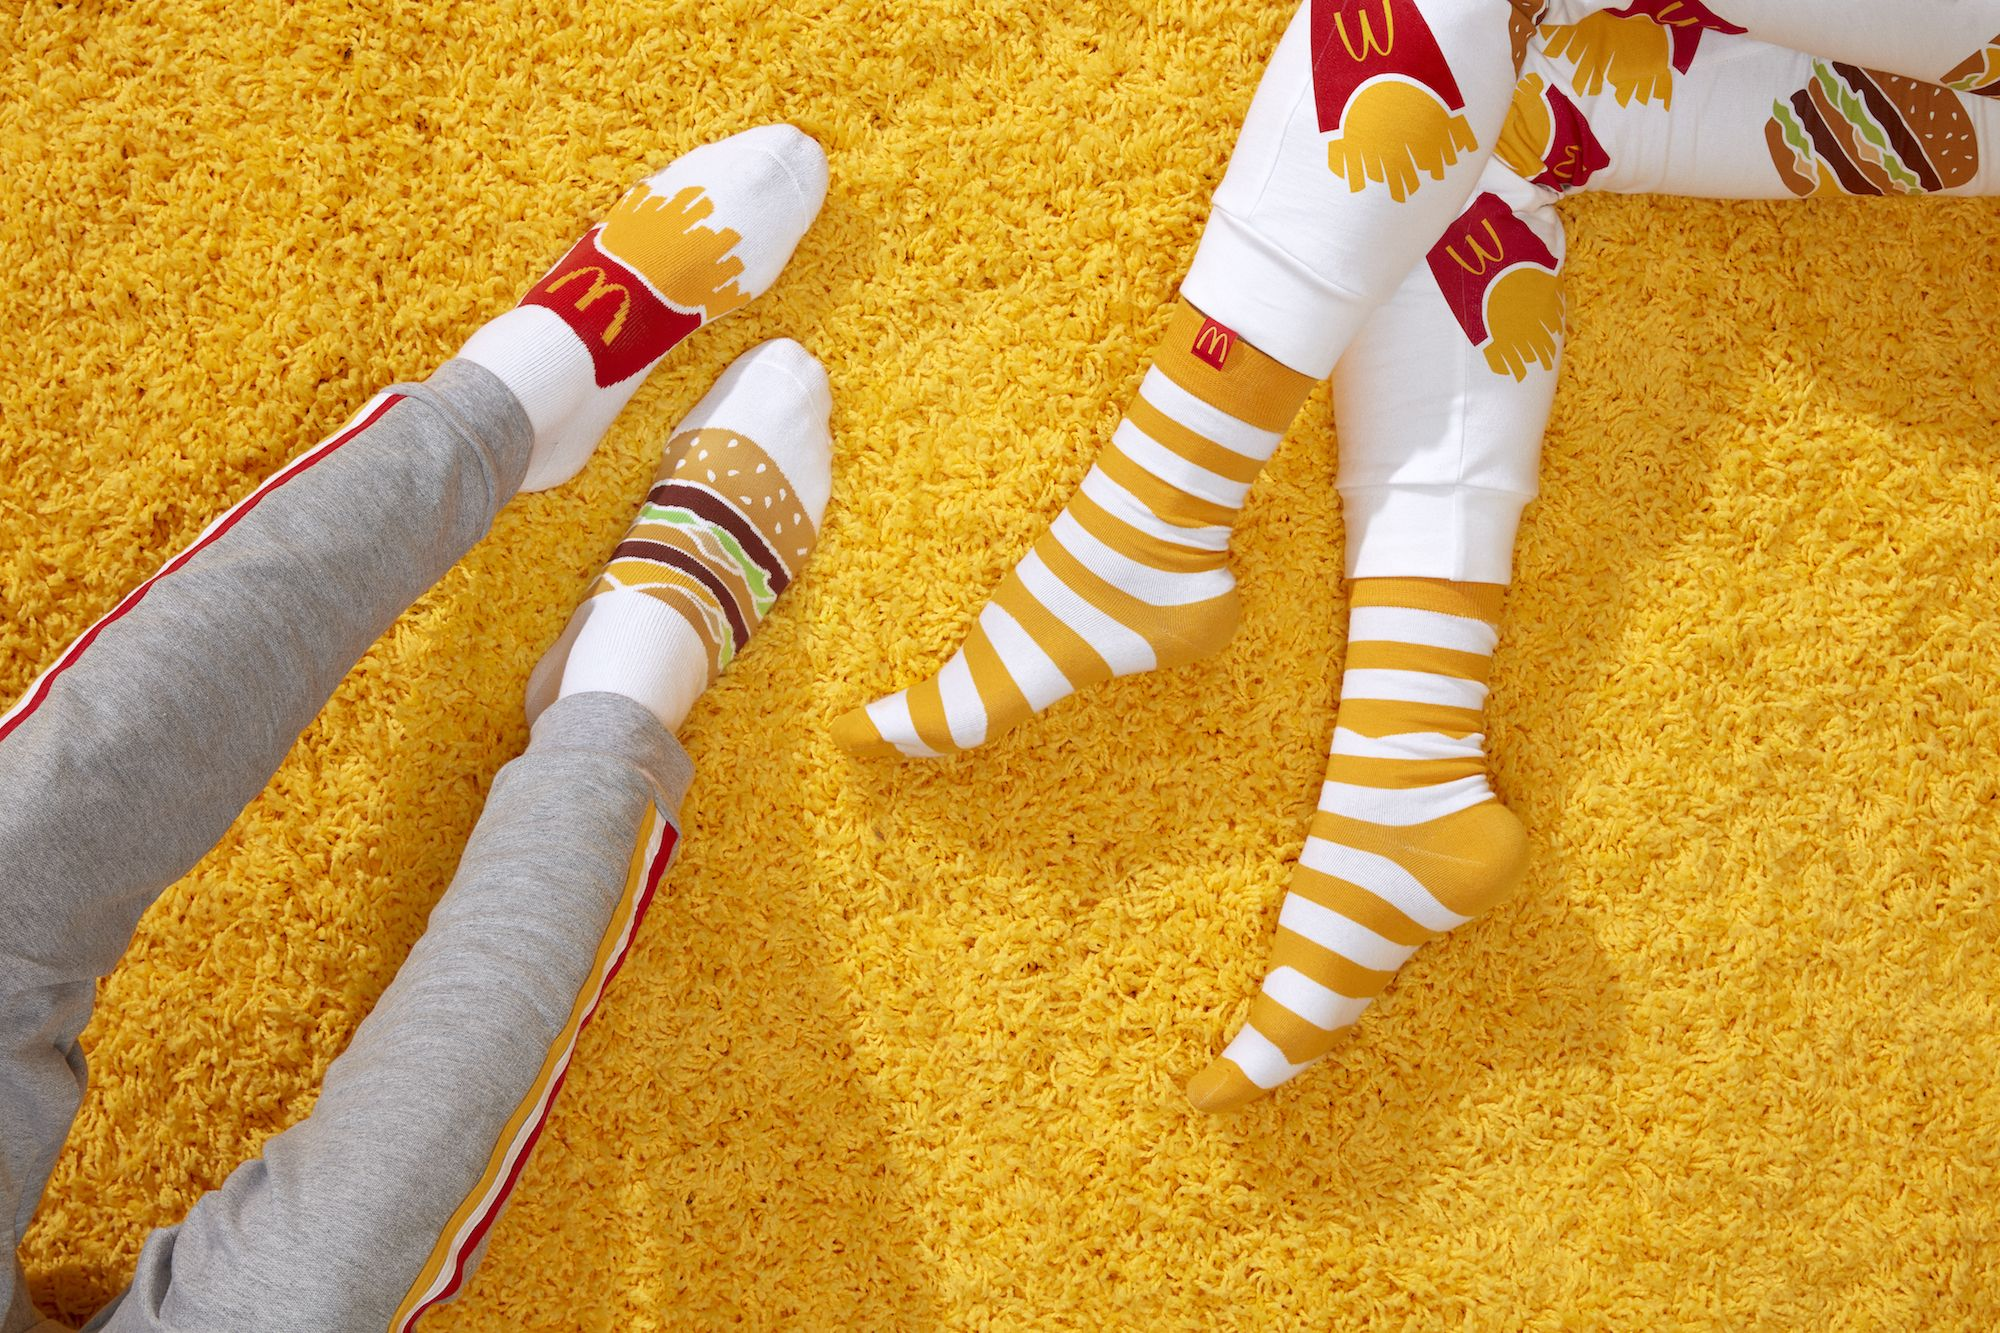 McDonald's Is Giving Away Free French Fry And Burger Socks With Orders This Week